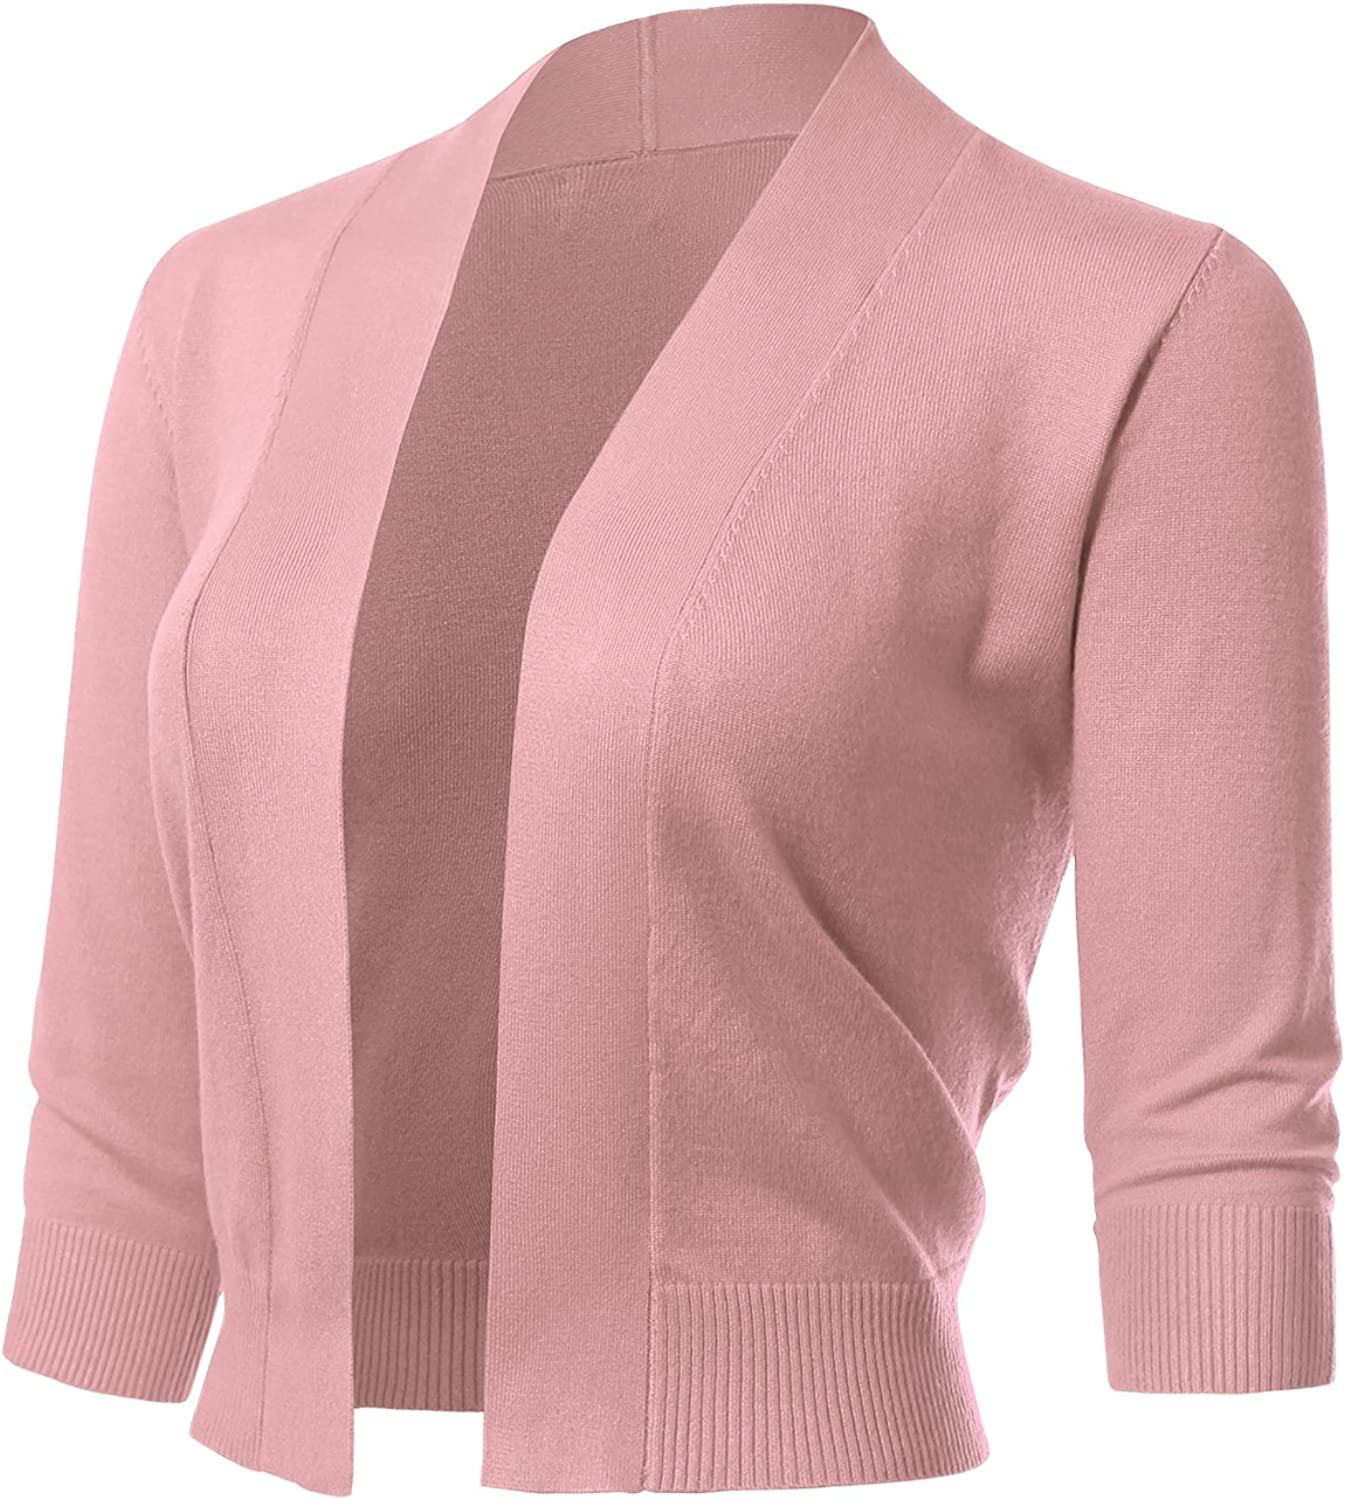 Allsense Women's Classic 3/4 Sleeve Open Front Cropped Cardigans (S-3XL)